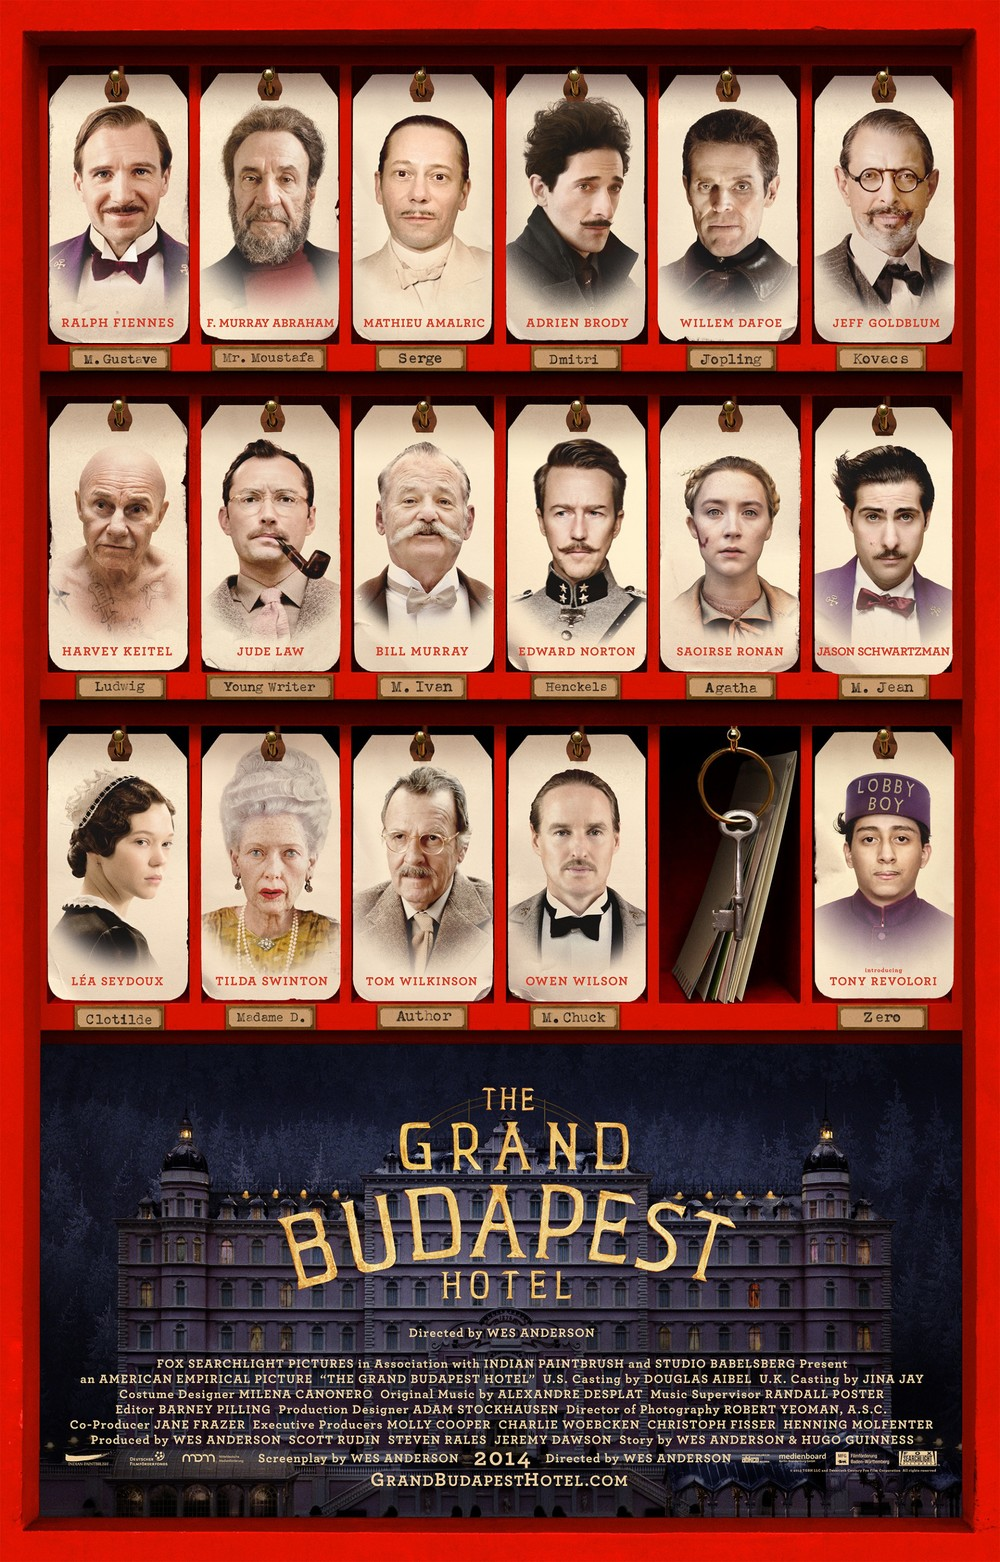 The-Grand-Budapest-Hotel-Official-Poster-Banner-PROMO-POSTER-XXLG-19DEZEMBRO2013.jpg